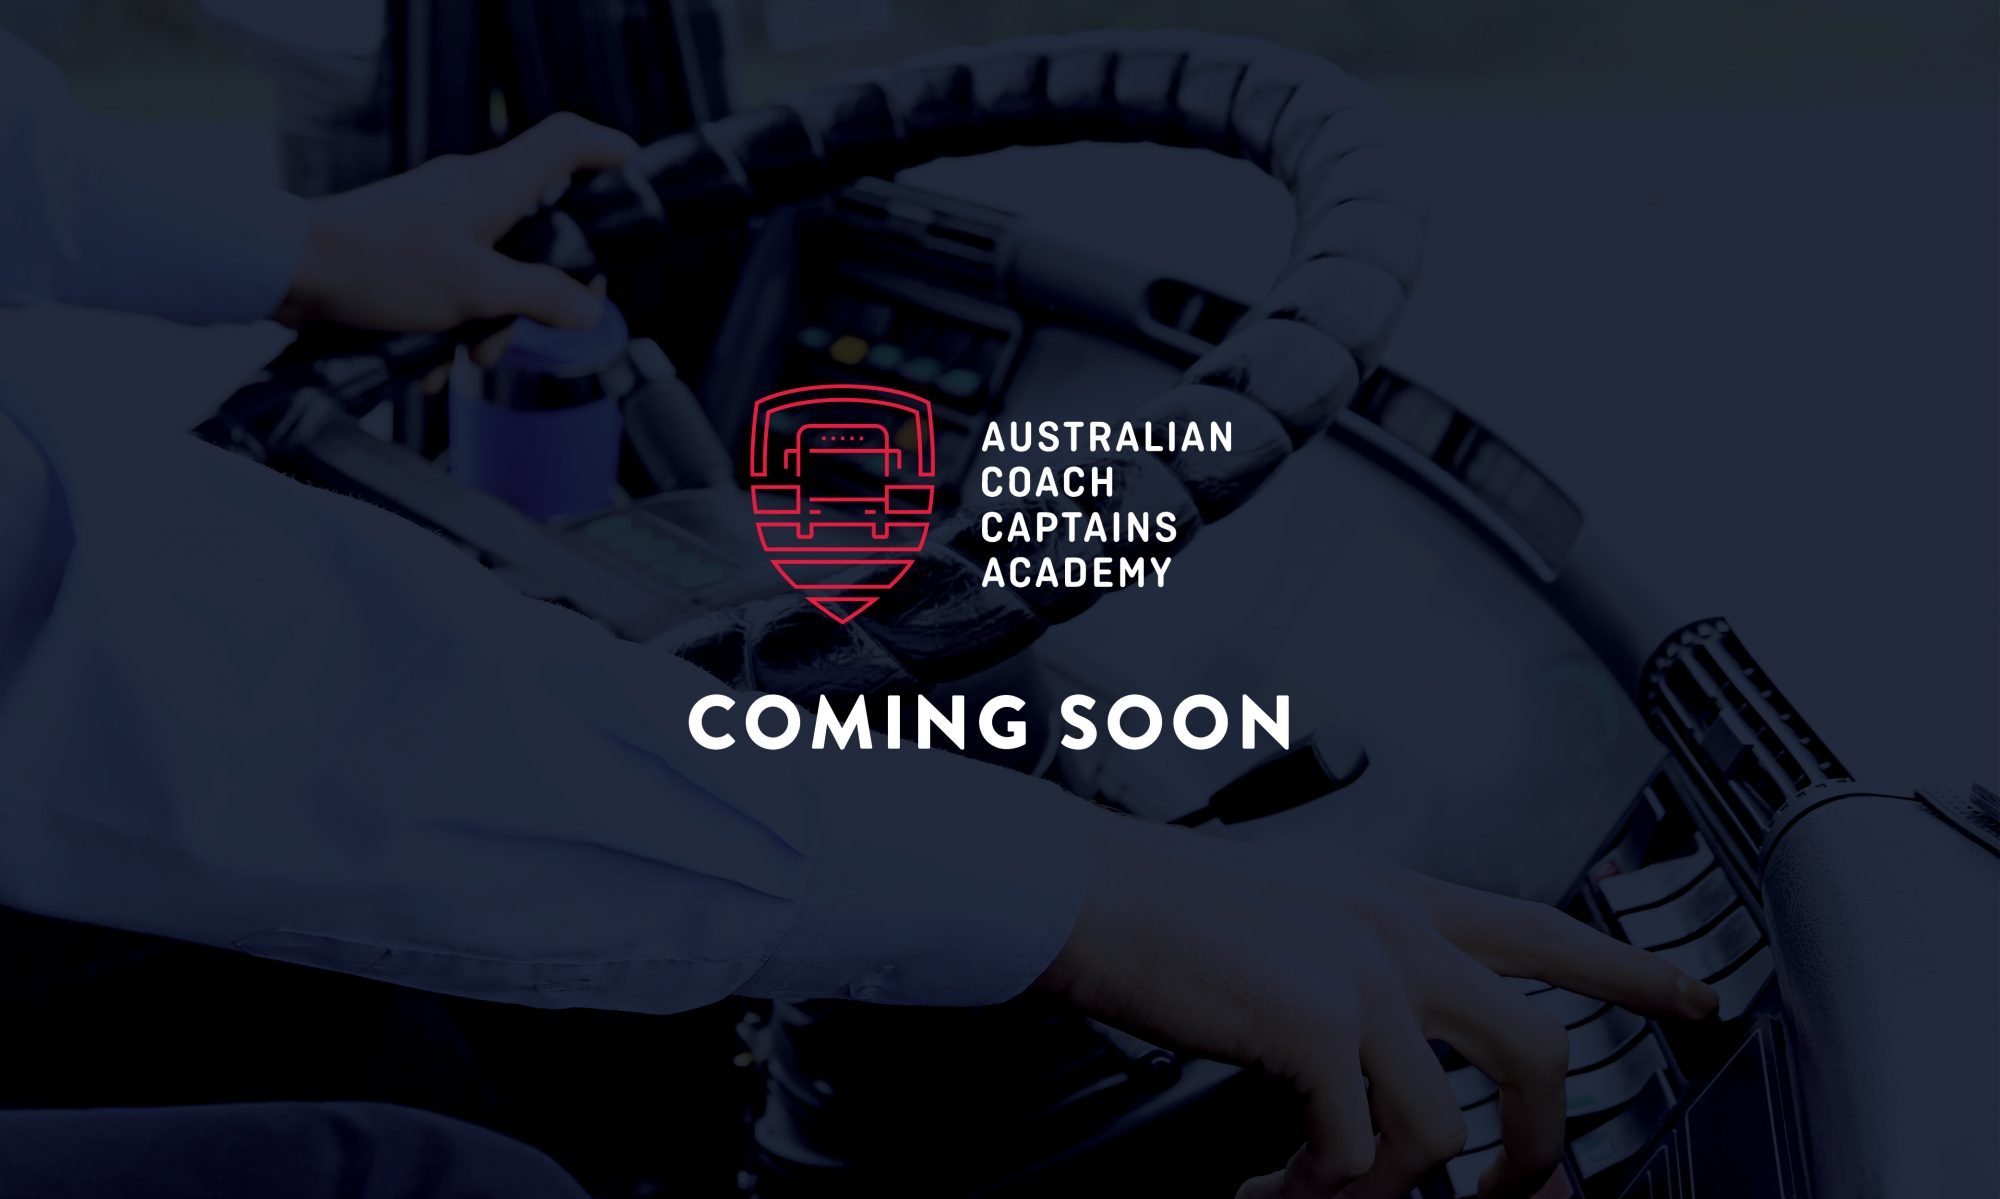 AUSTRALIAN COACH CAPTAINS ACADEMY